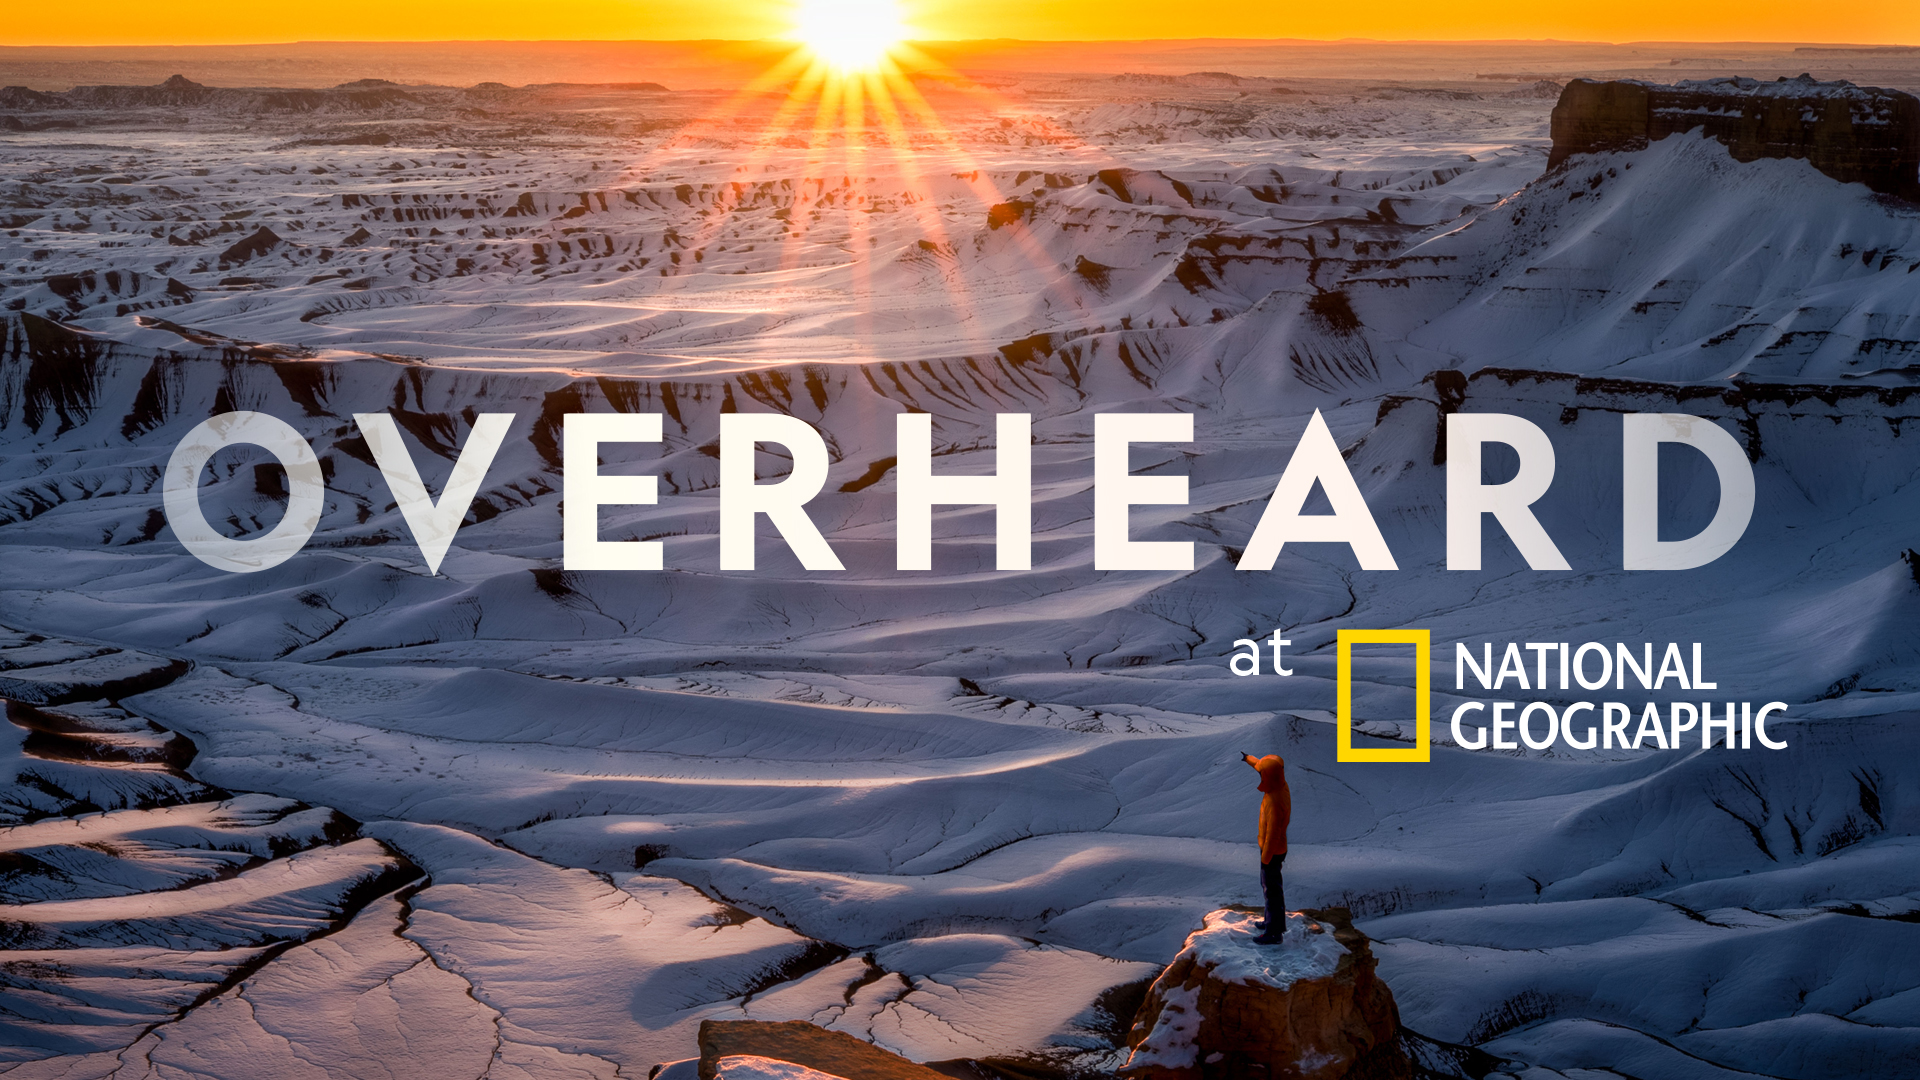 National Geographic's 'Overheard at National Geographic' Podcast Returns for Season Five